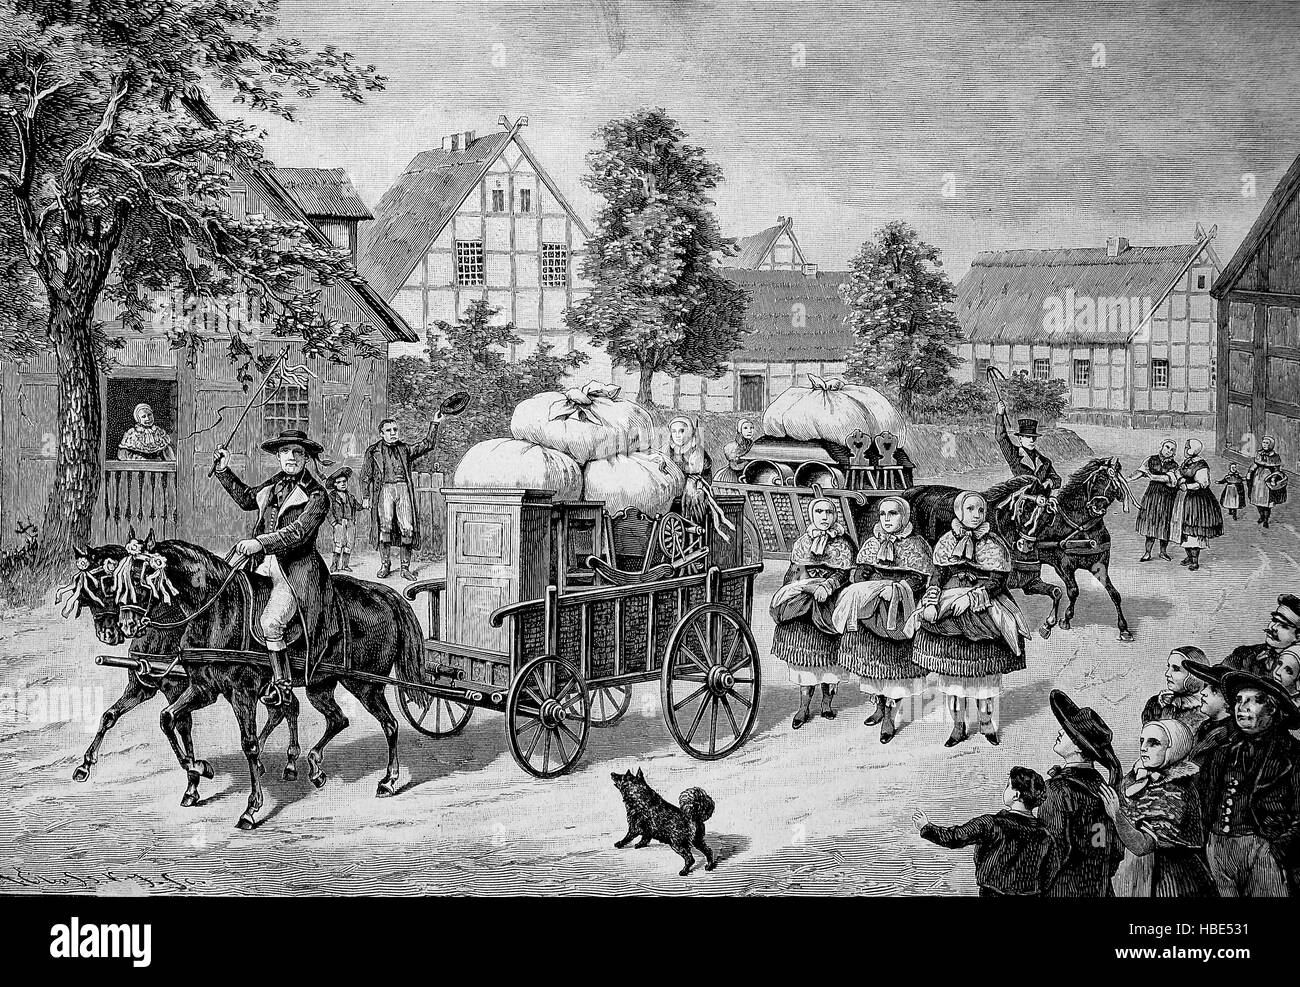 The bride's beds are driven through the village by a carriage. Customs in Pomerania, 19th century, illustration, - Stock Image